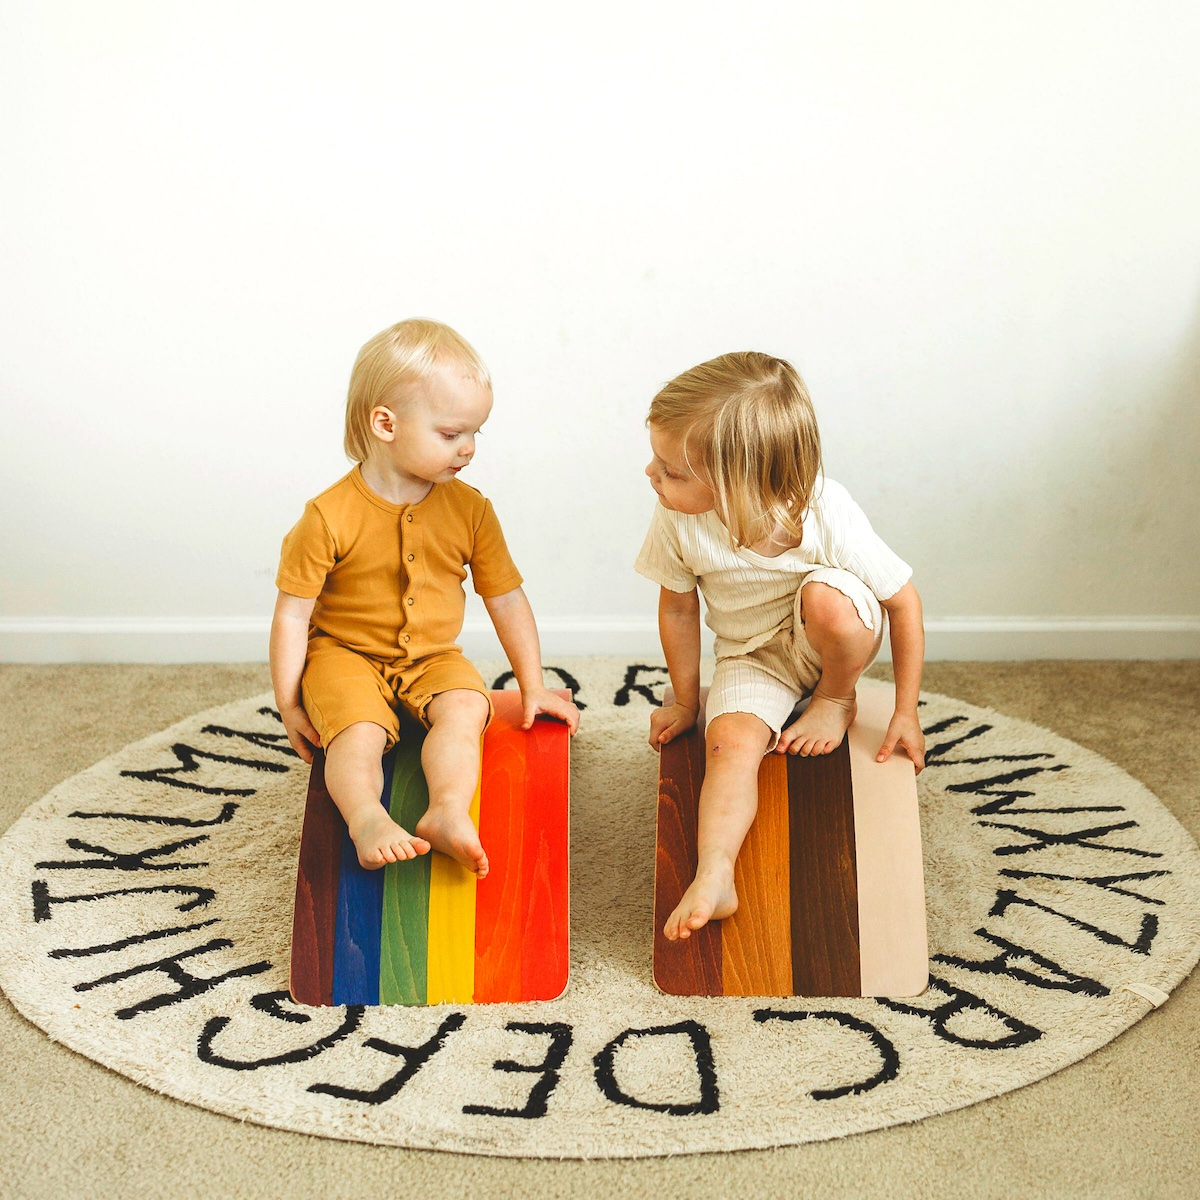 Two toddlers sitting on a Rainbow Bunny Hopkins Wobble Board on top of an alphabet play mat